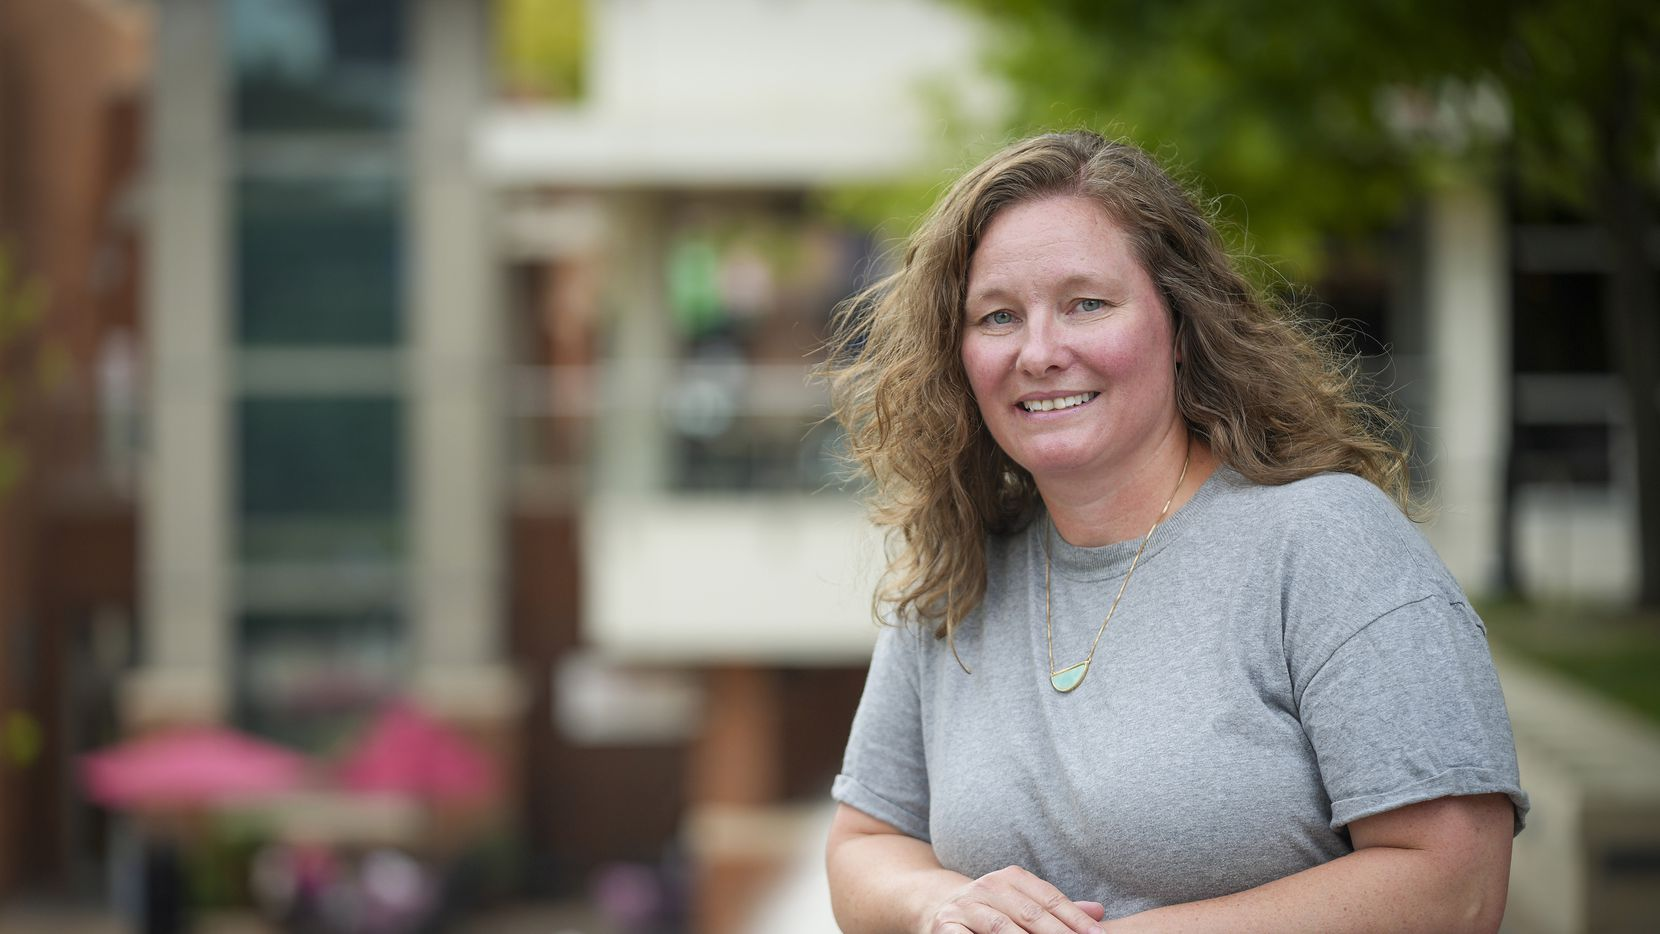 Mandy Chapman Semple is a consultant who has helped Houston house its homeless population. She is now helping Dallas do the same by forming a partnership with North Texas organizations.